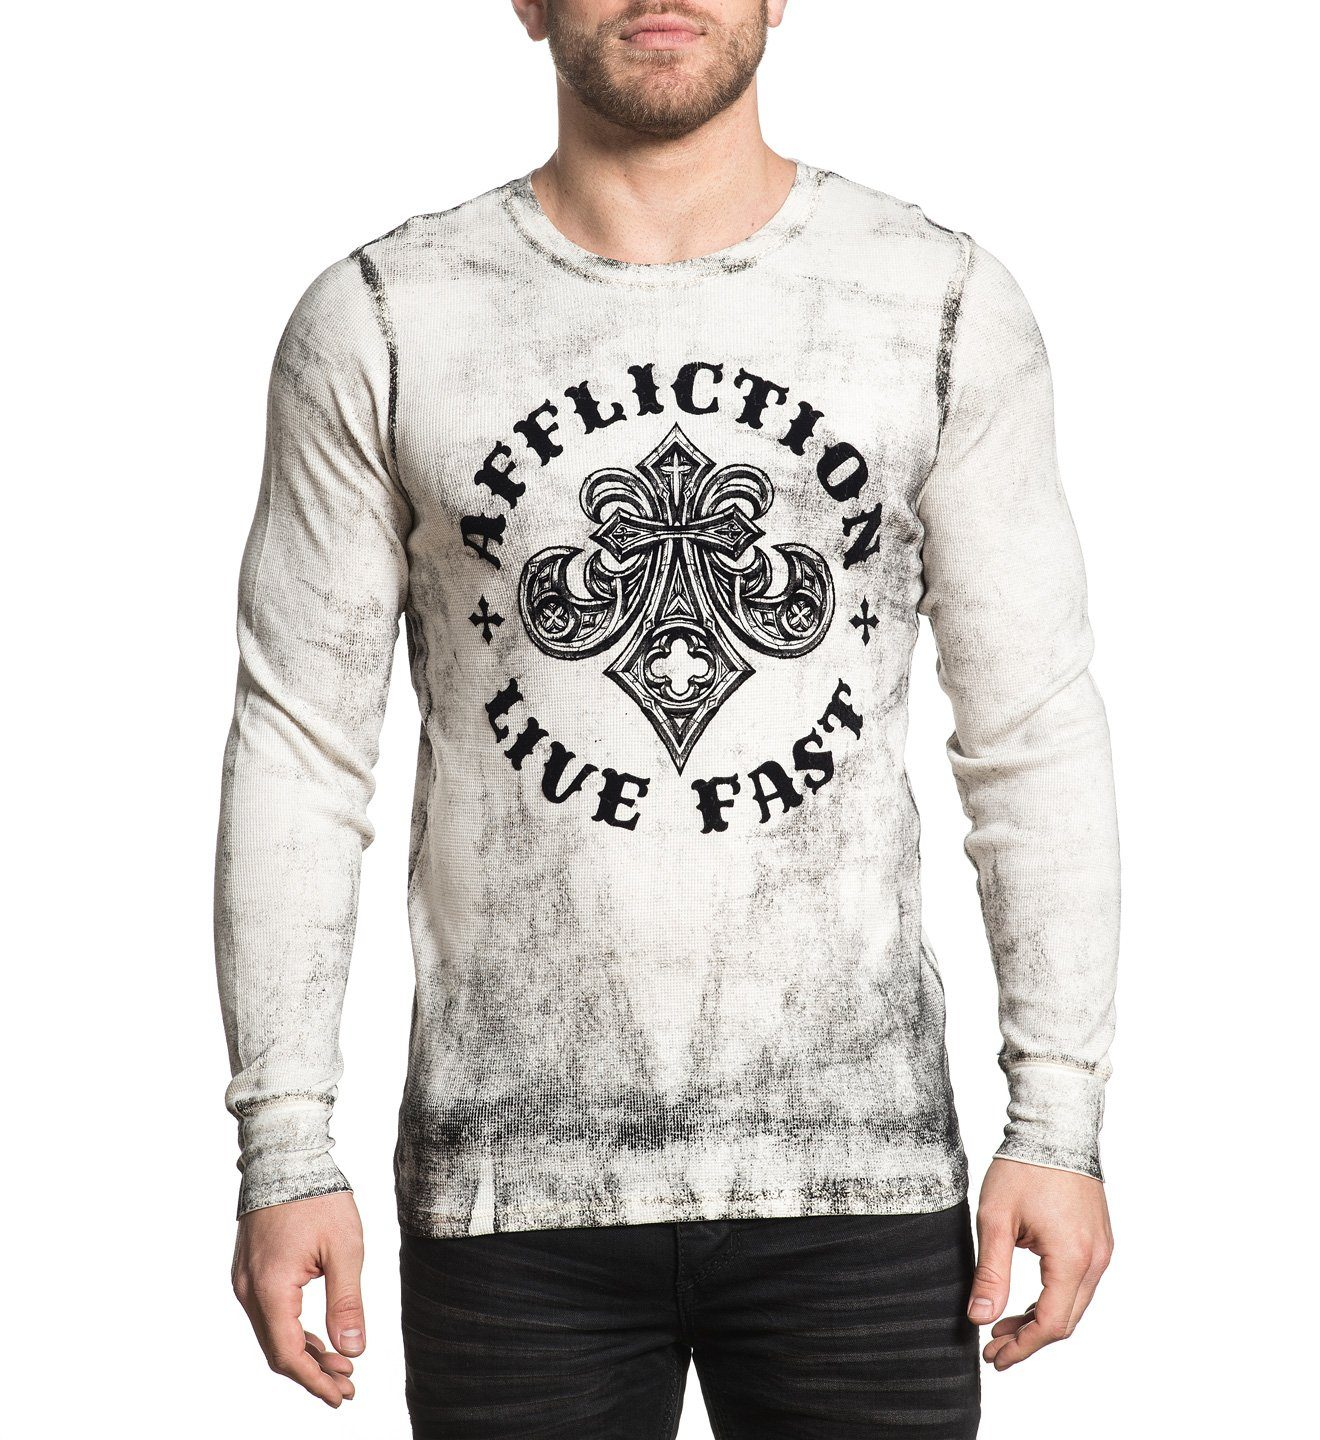 Royale - Mens Long Sleeve Tees - Affliction Clothing